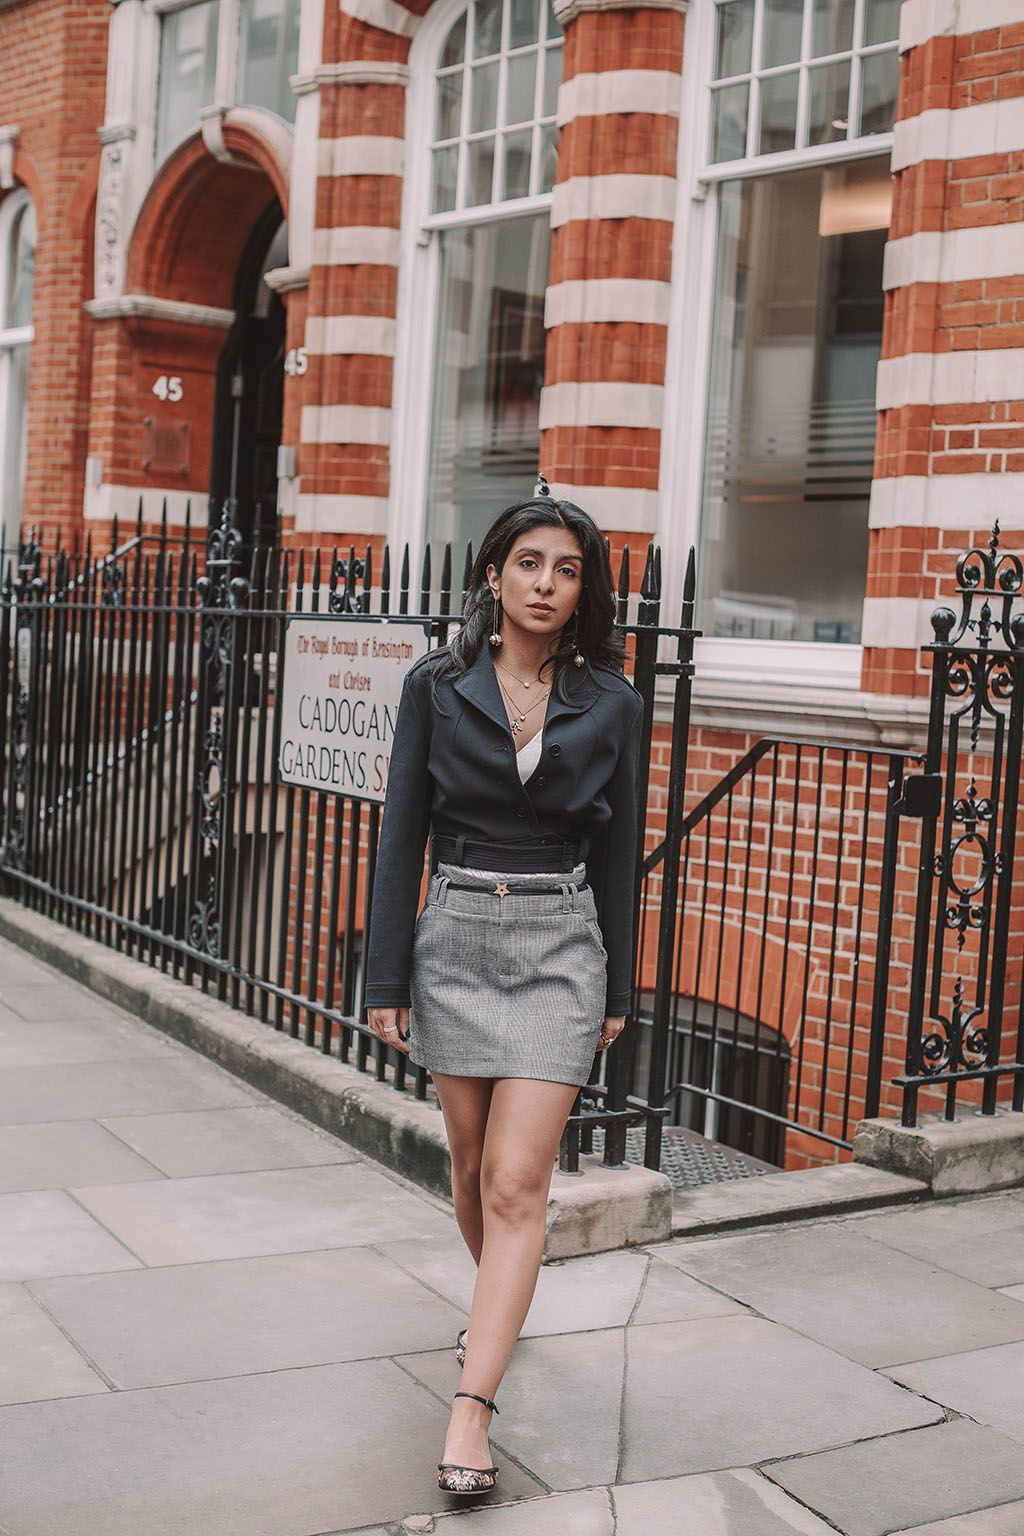 3e1e89b87 Fashion blogger Shloka Narang of The Silk Sneaker shares how to style a  plaid skirt to create the perfect summer outfit featuring Maje, Zara and  Dior